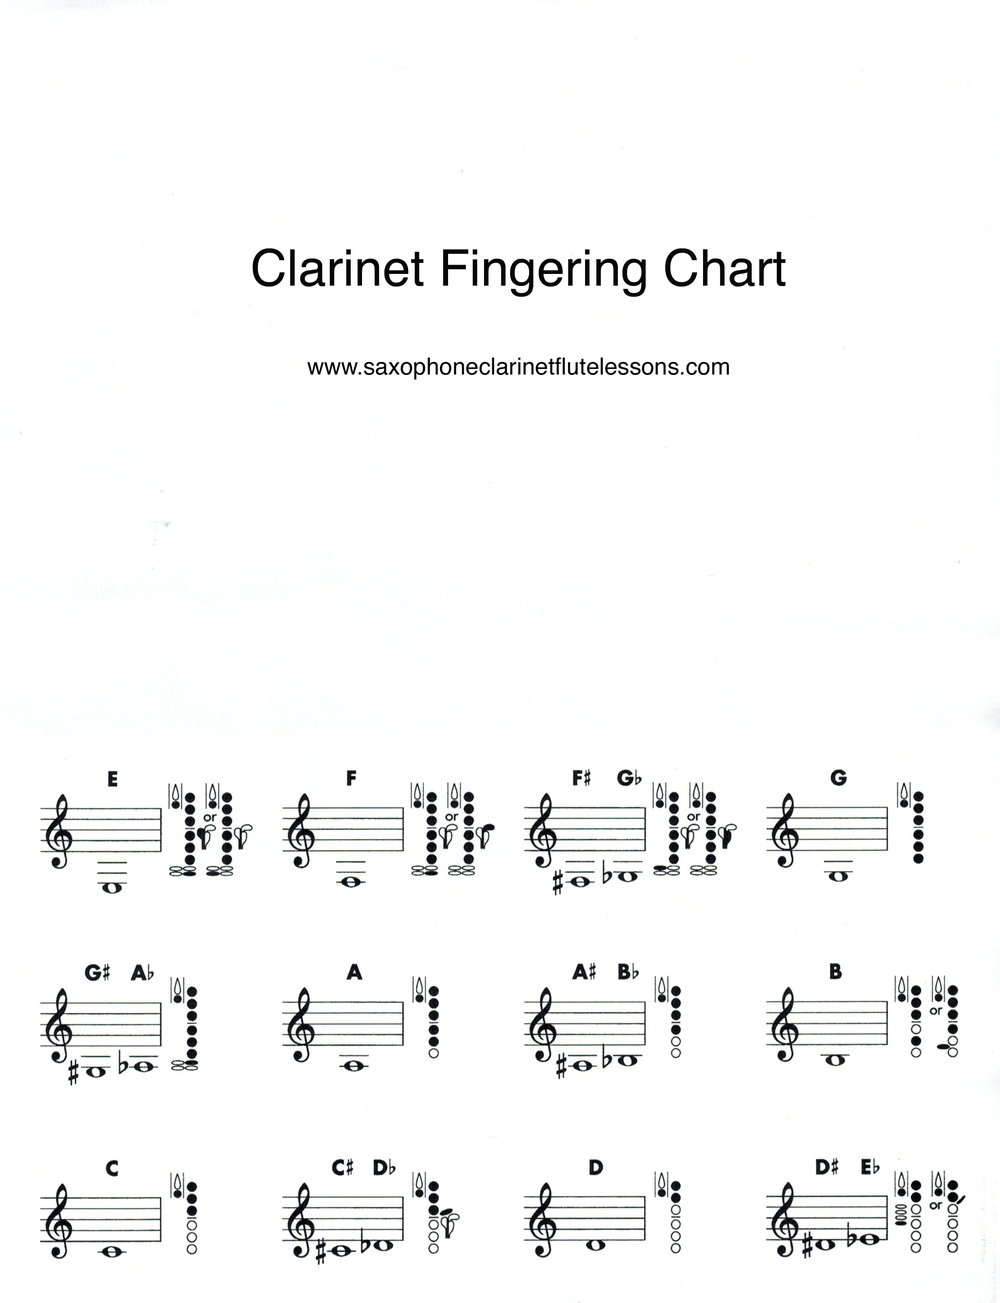 Basic Clarinet Fingering Chart Saxophone Clarinet and Flute – Clarinet Fingering Chart